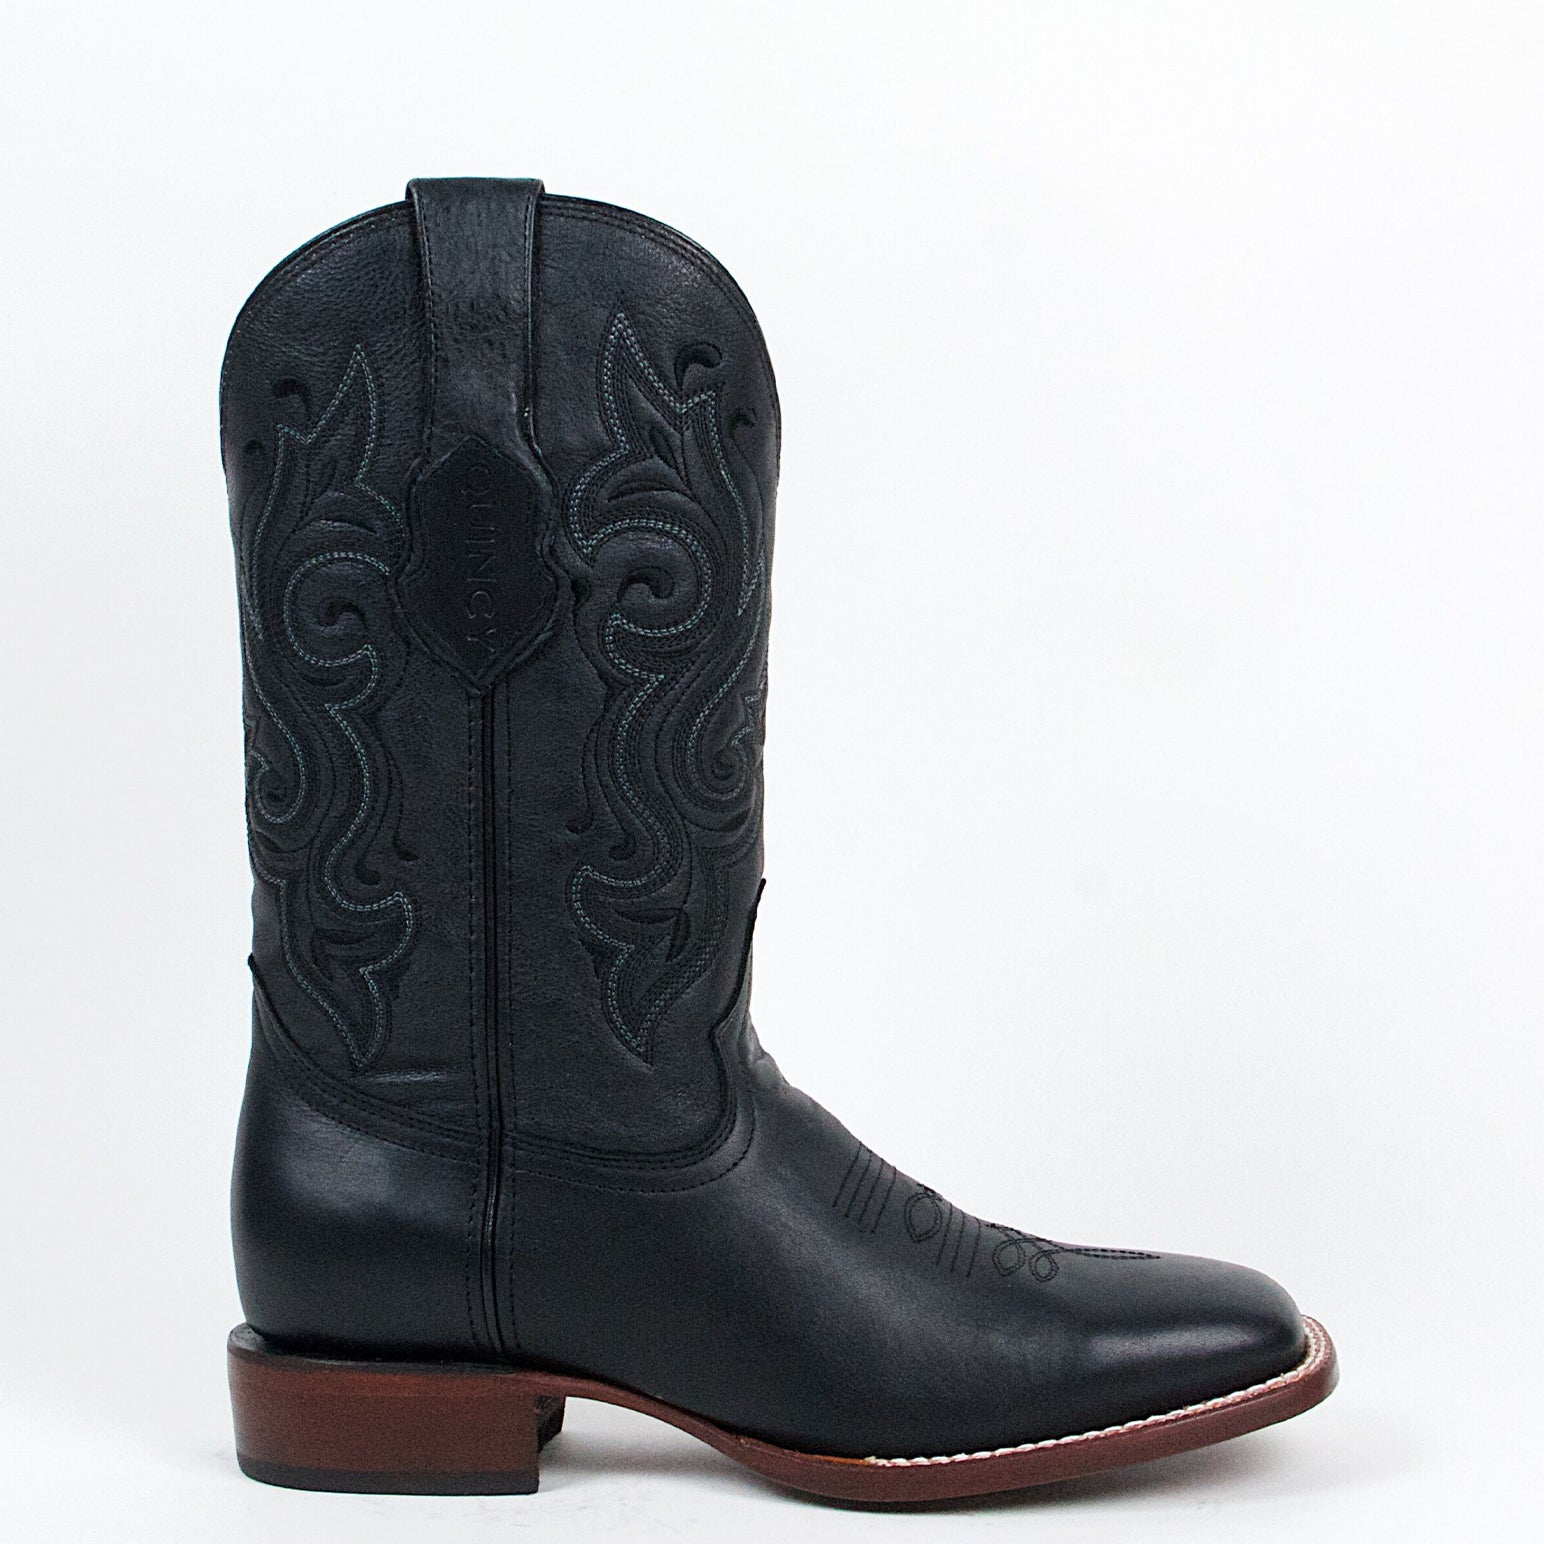 Quincy Black Square Toe Cowboy Boots